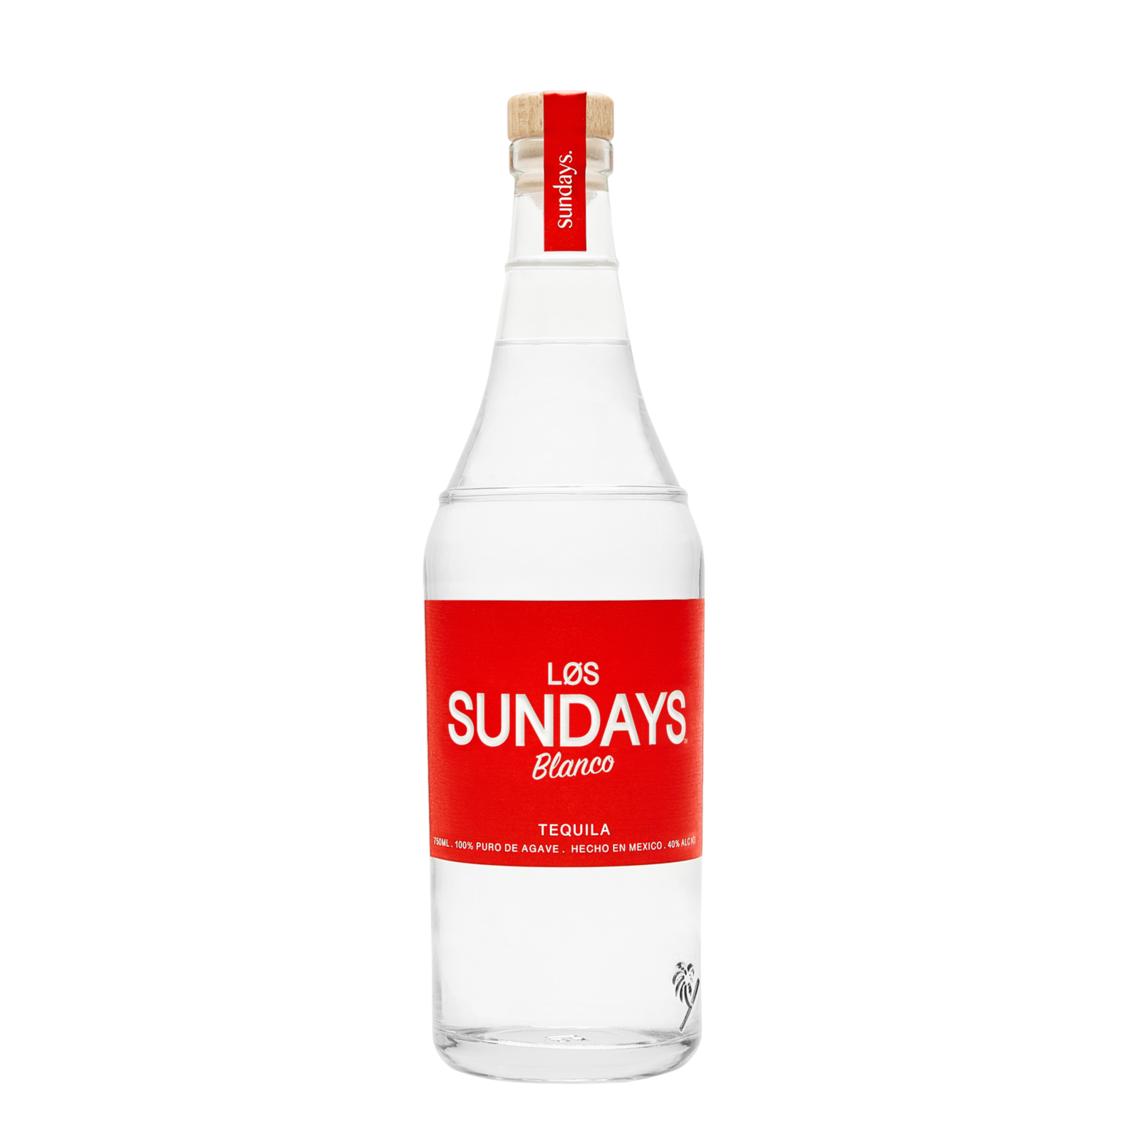 los sundays blanco